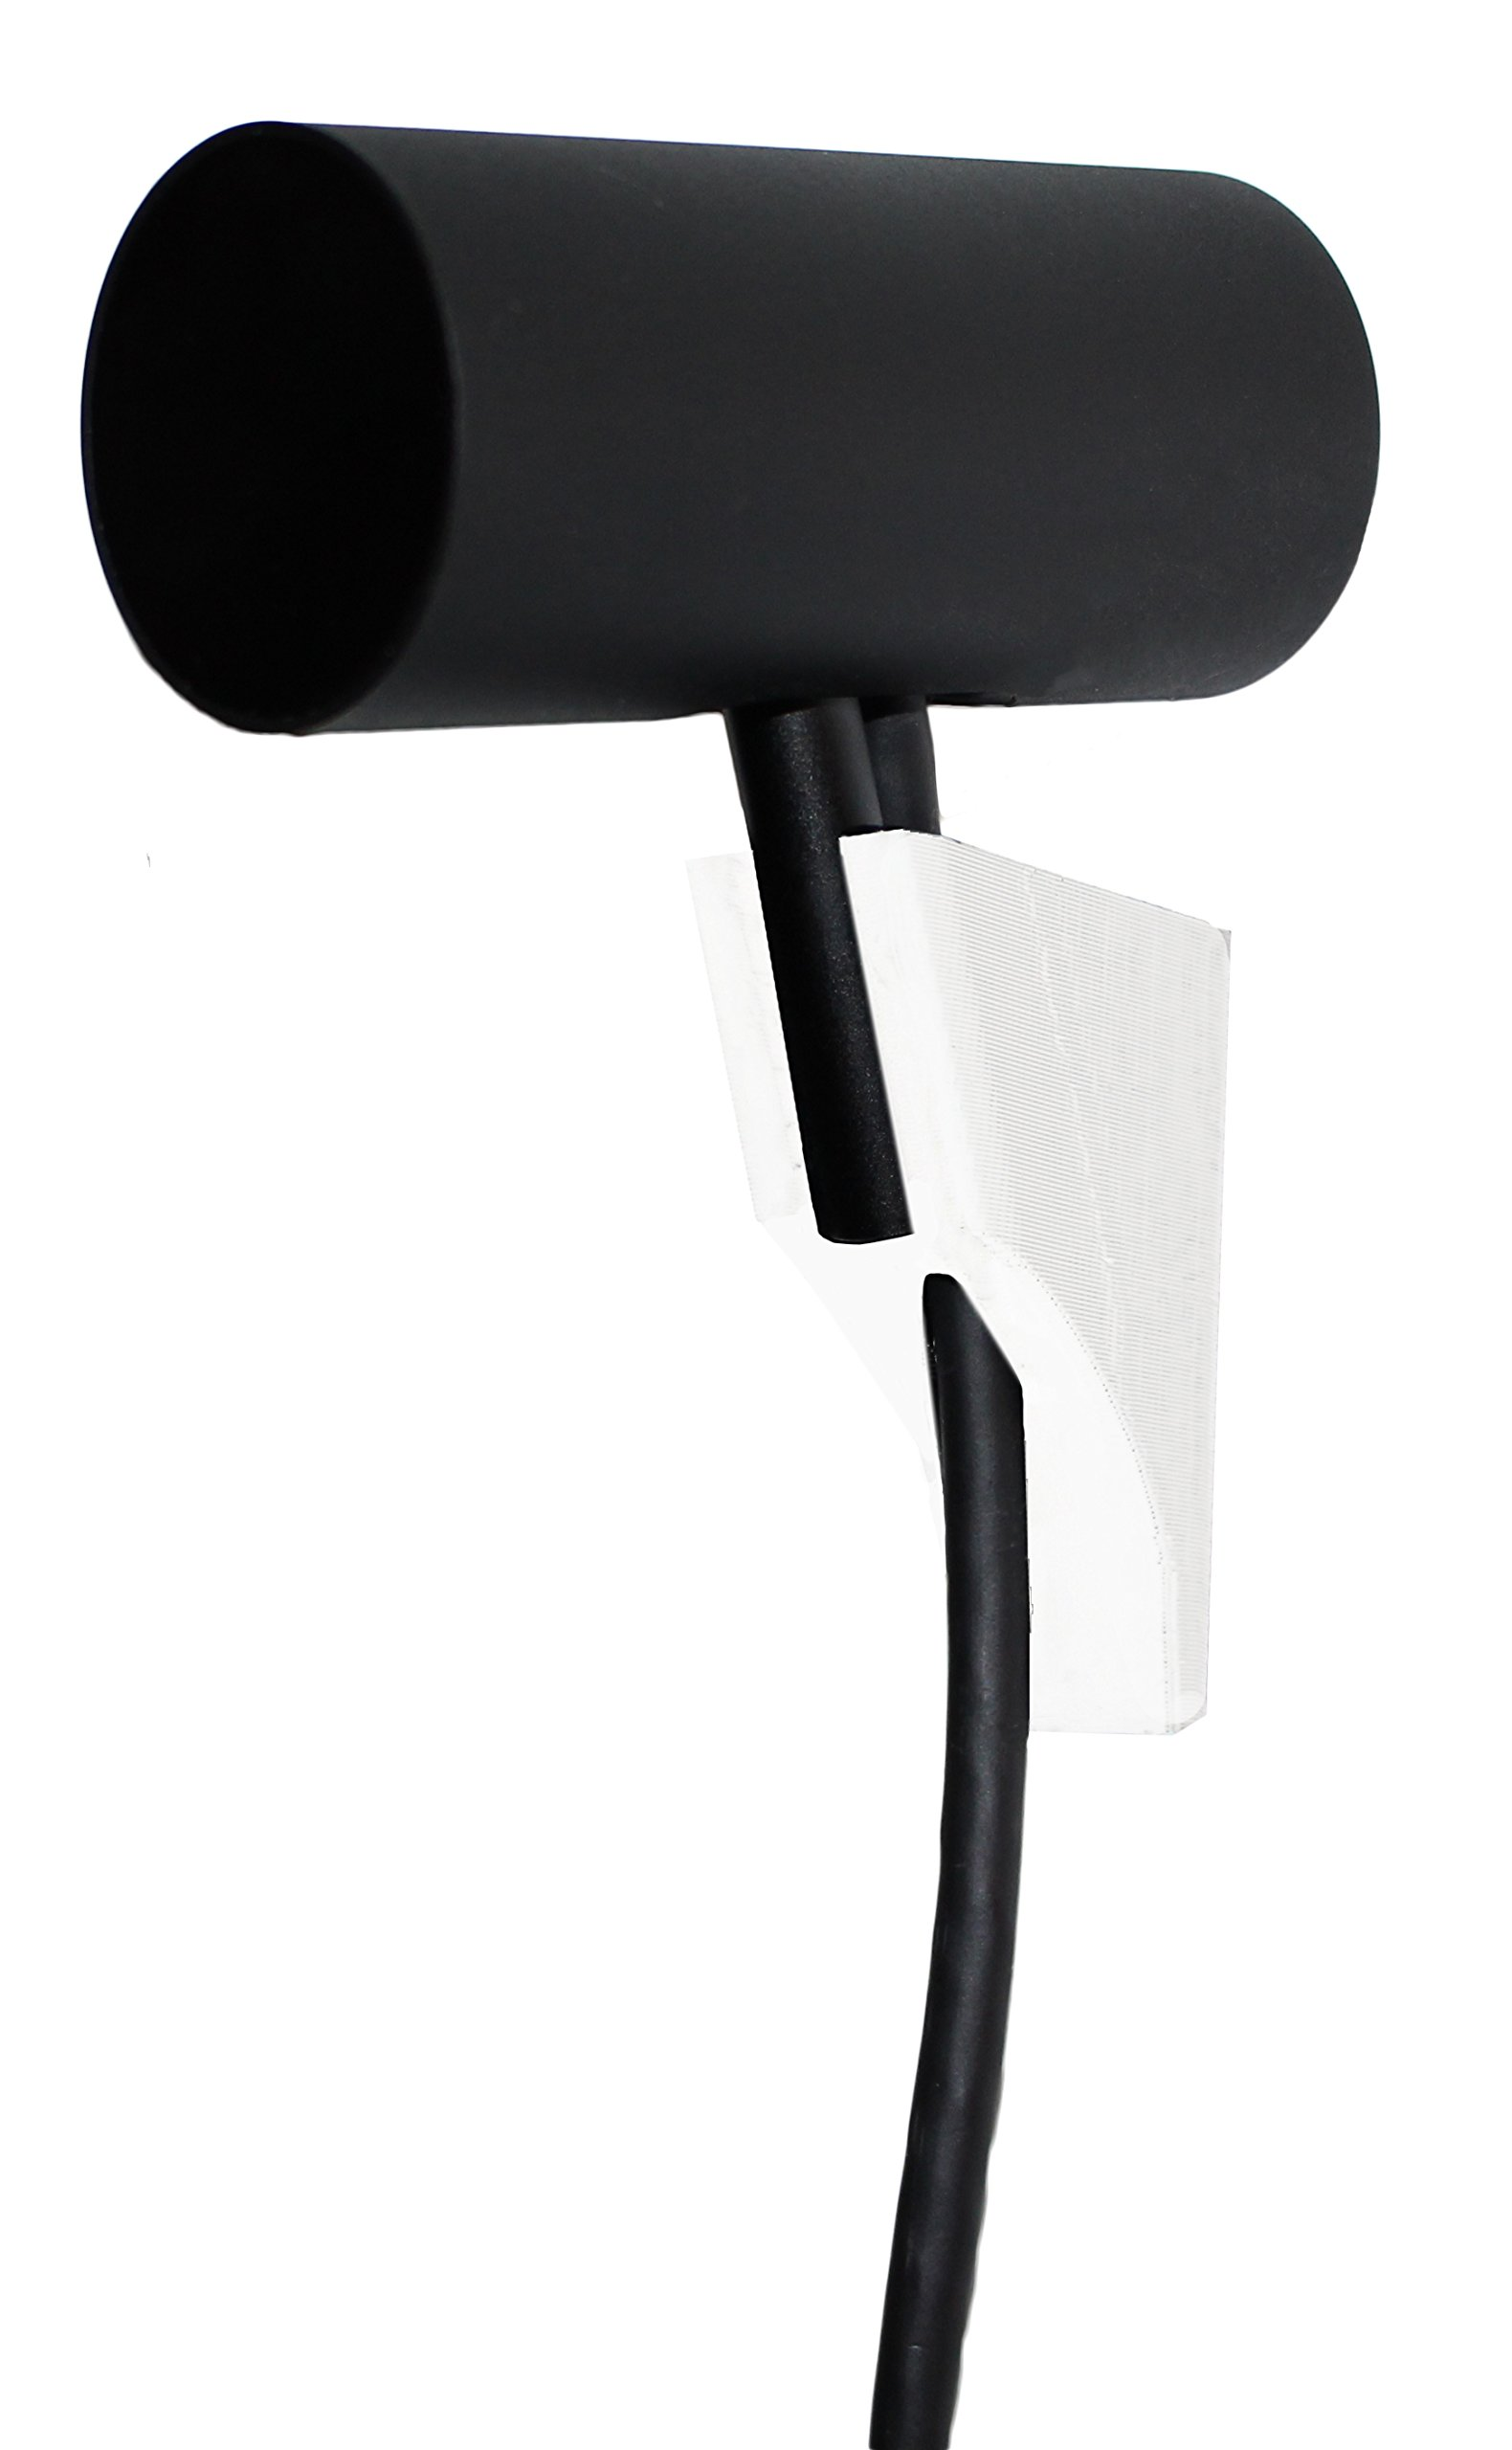 Spintech VR Sensor Mounts for Oculus Rift Fully Adjustable with No Drilling Required